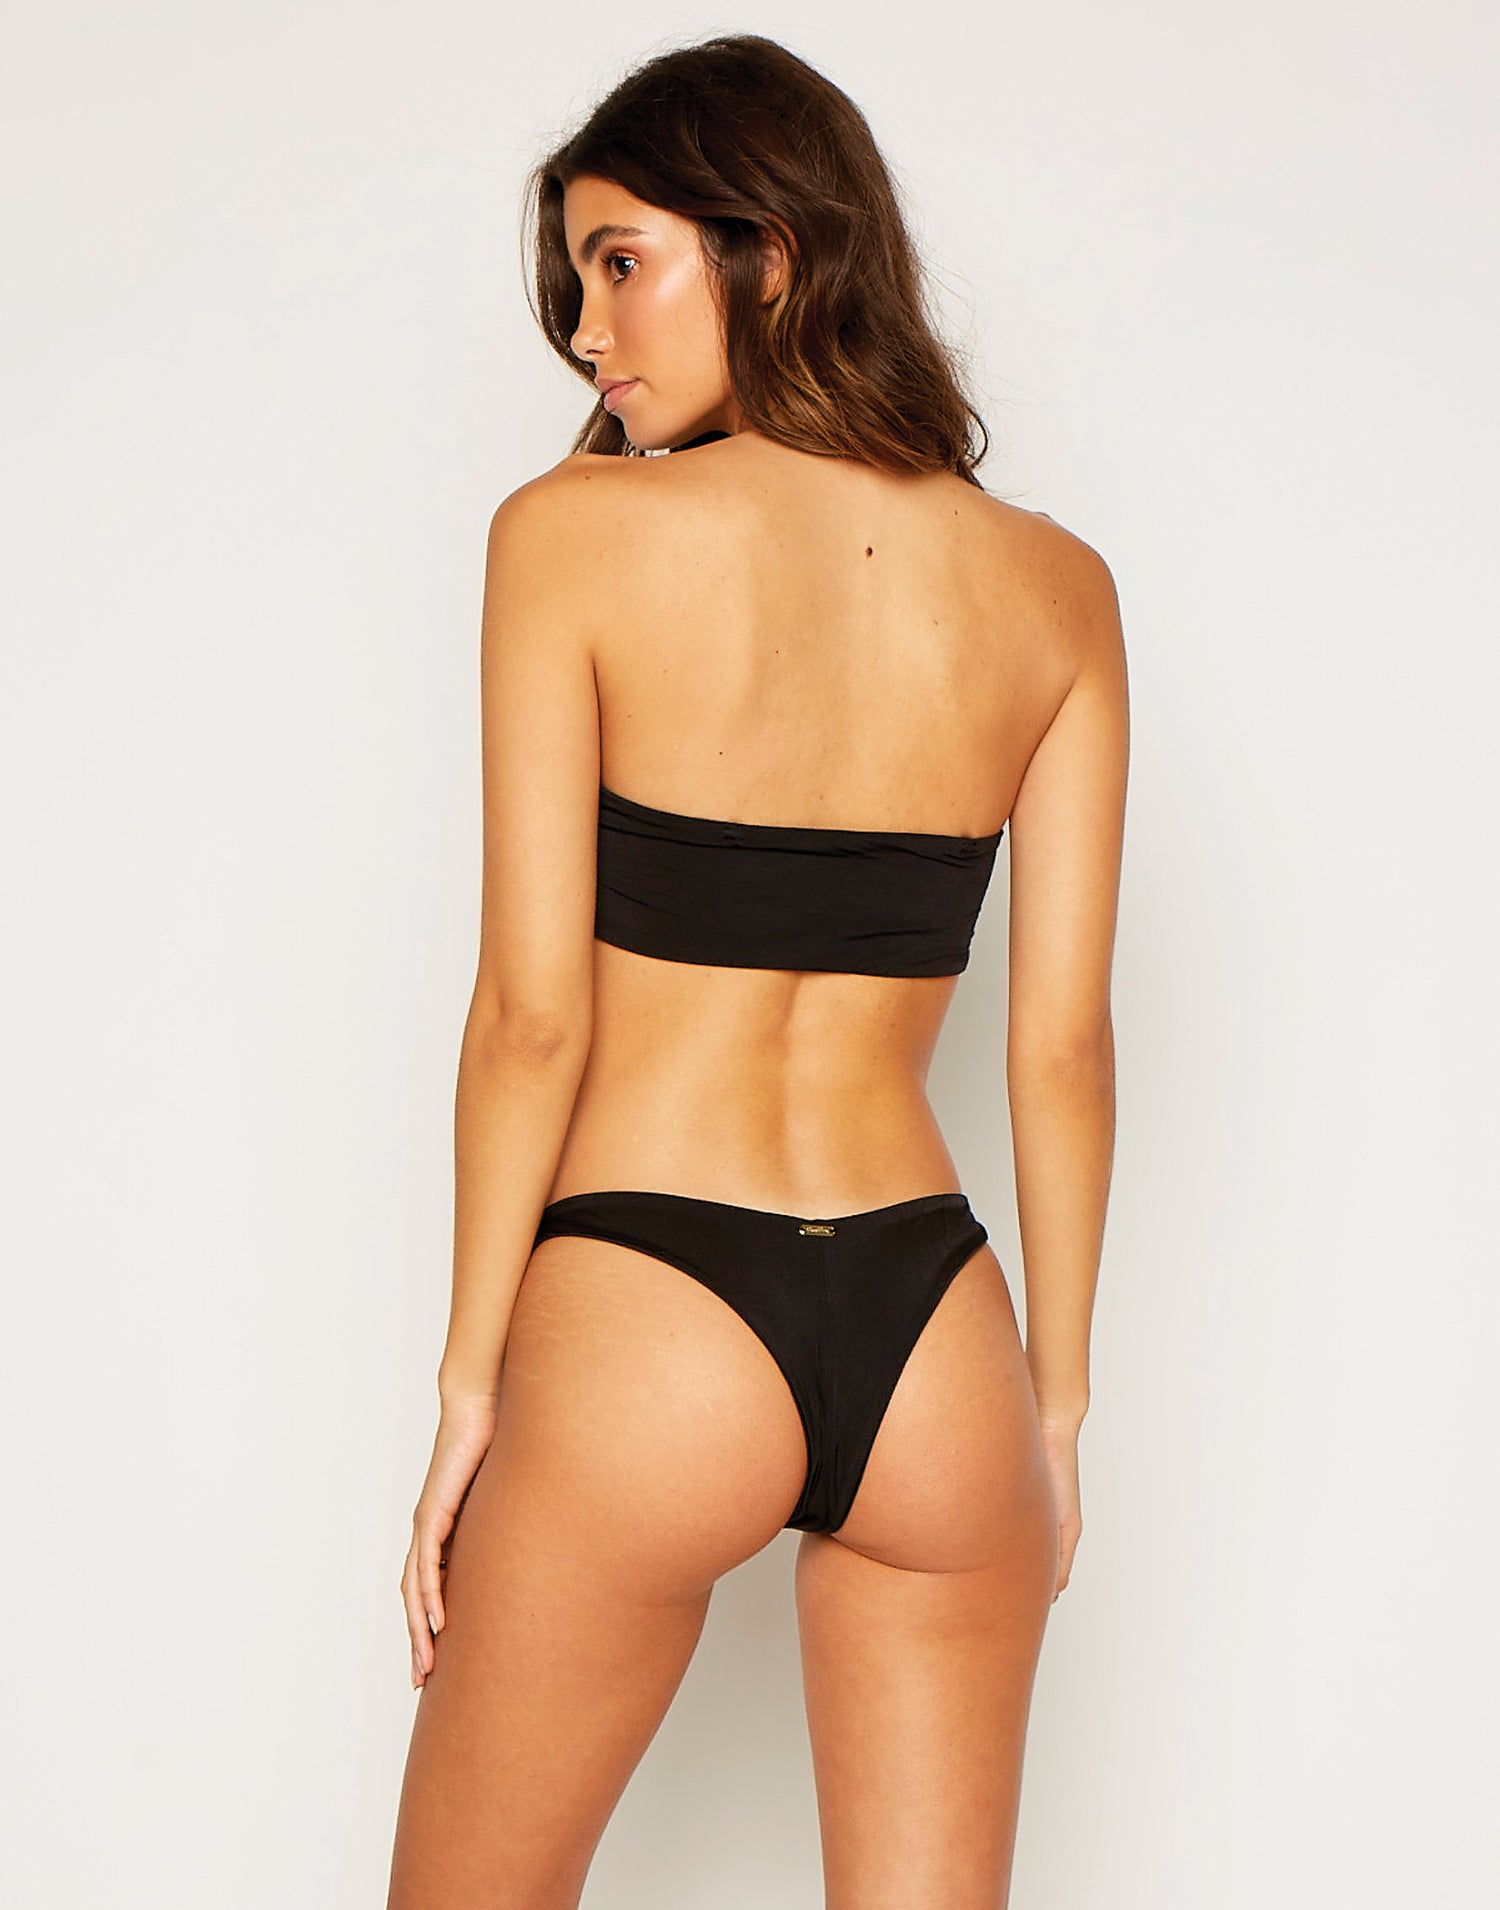 London Bralette Bikini Top in Black without Straps - back view